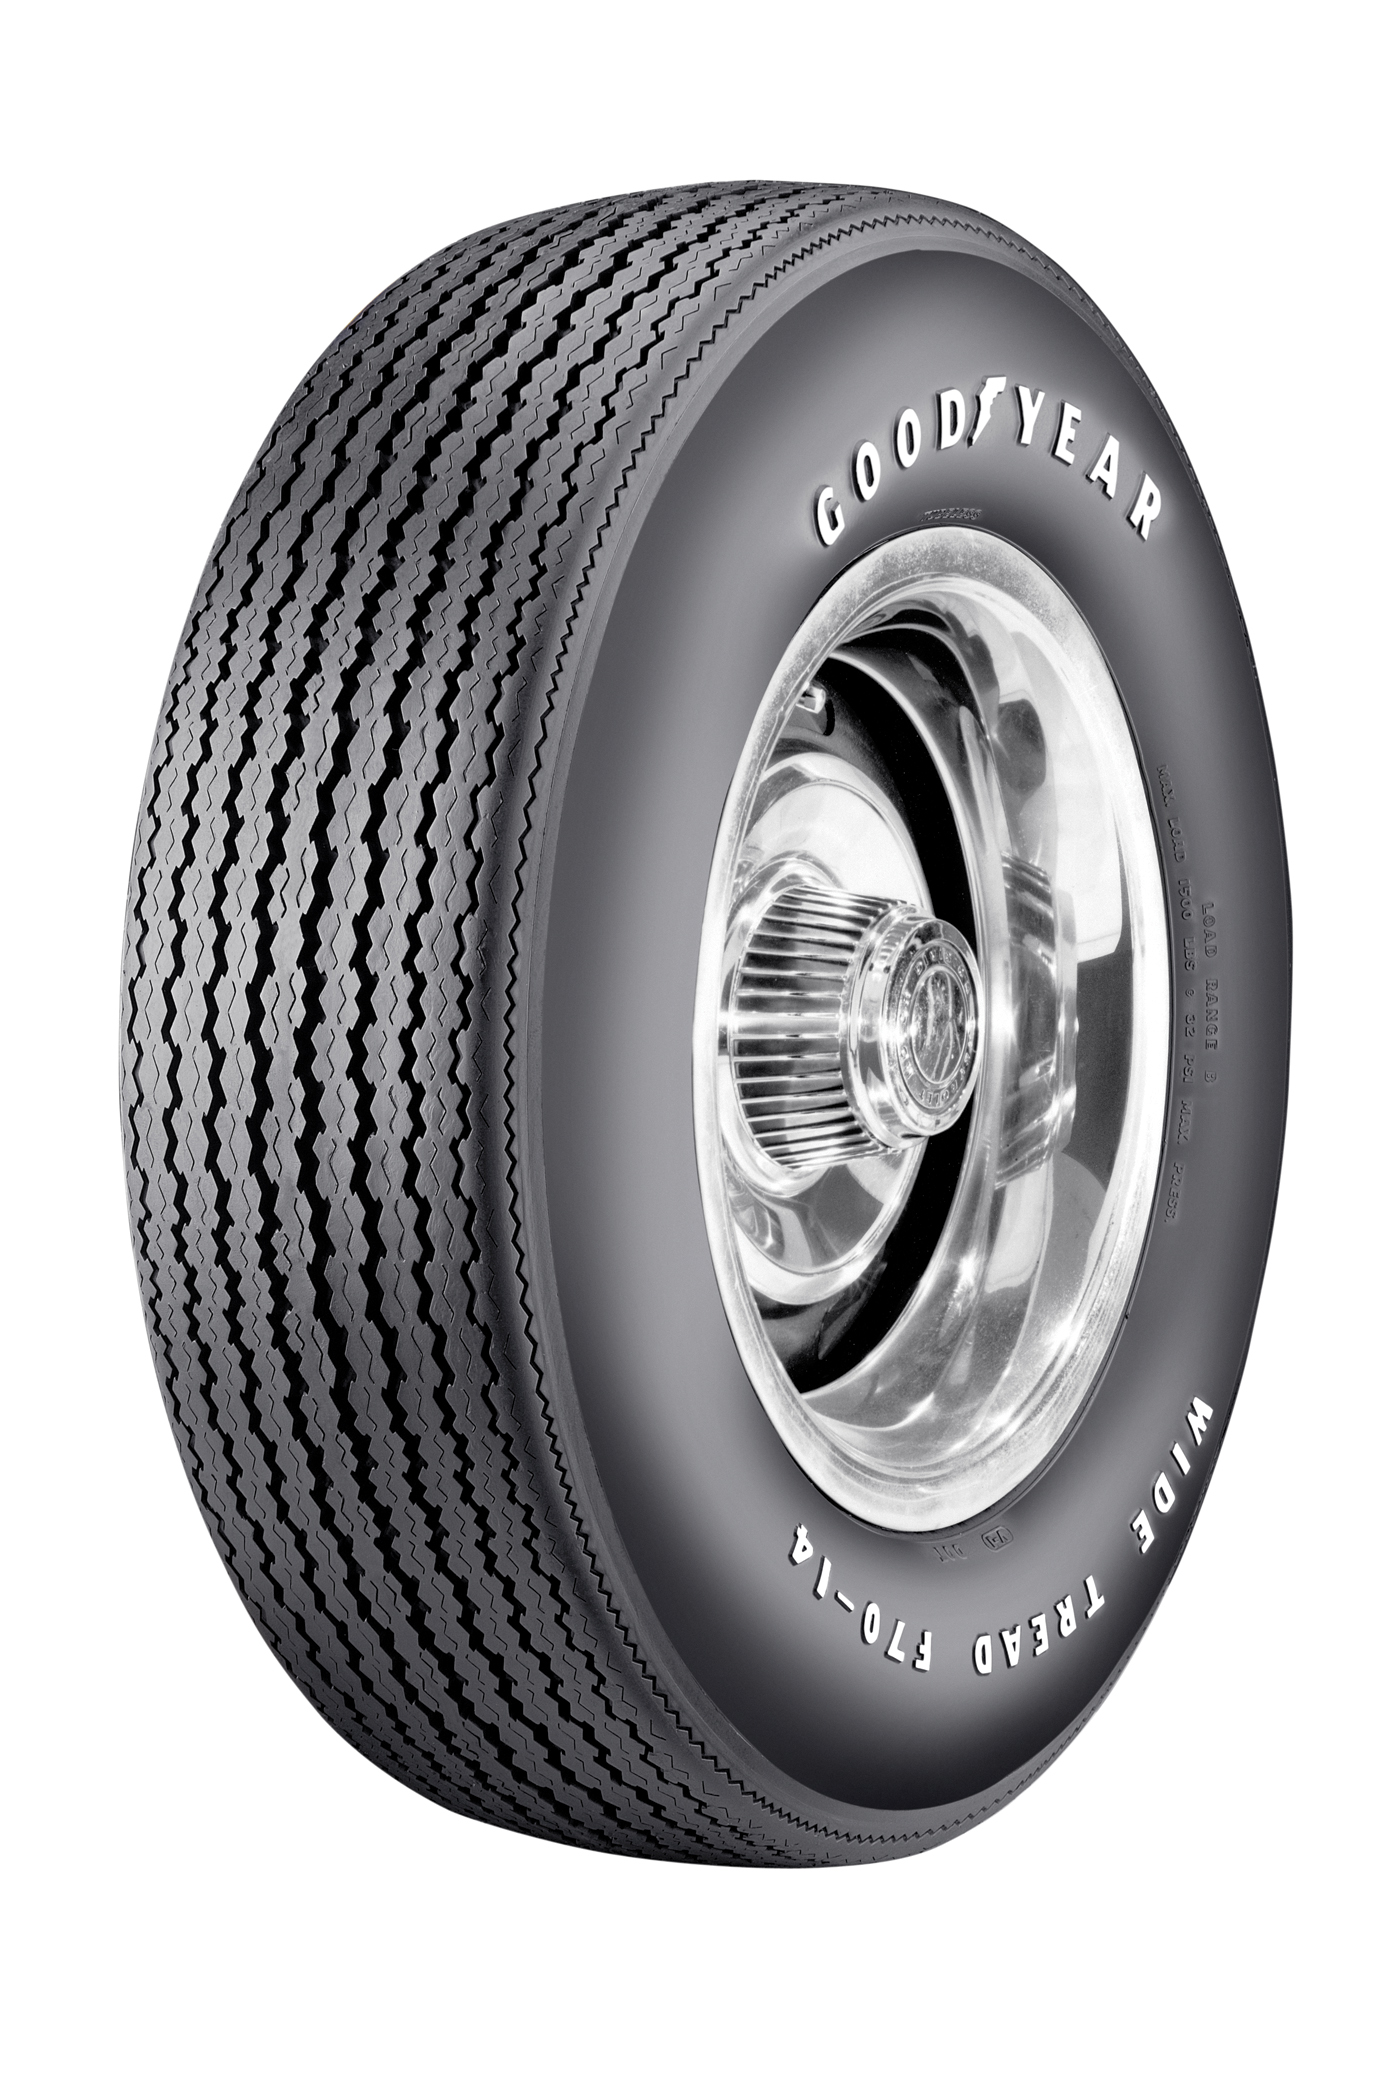 Speedway Wide Tread Raised White Letter 4 Ply Poly Tire F70 14